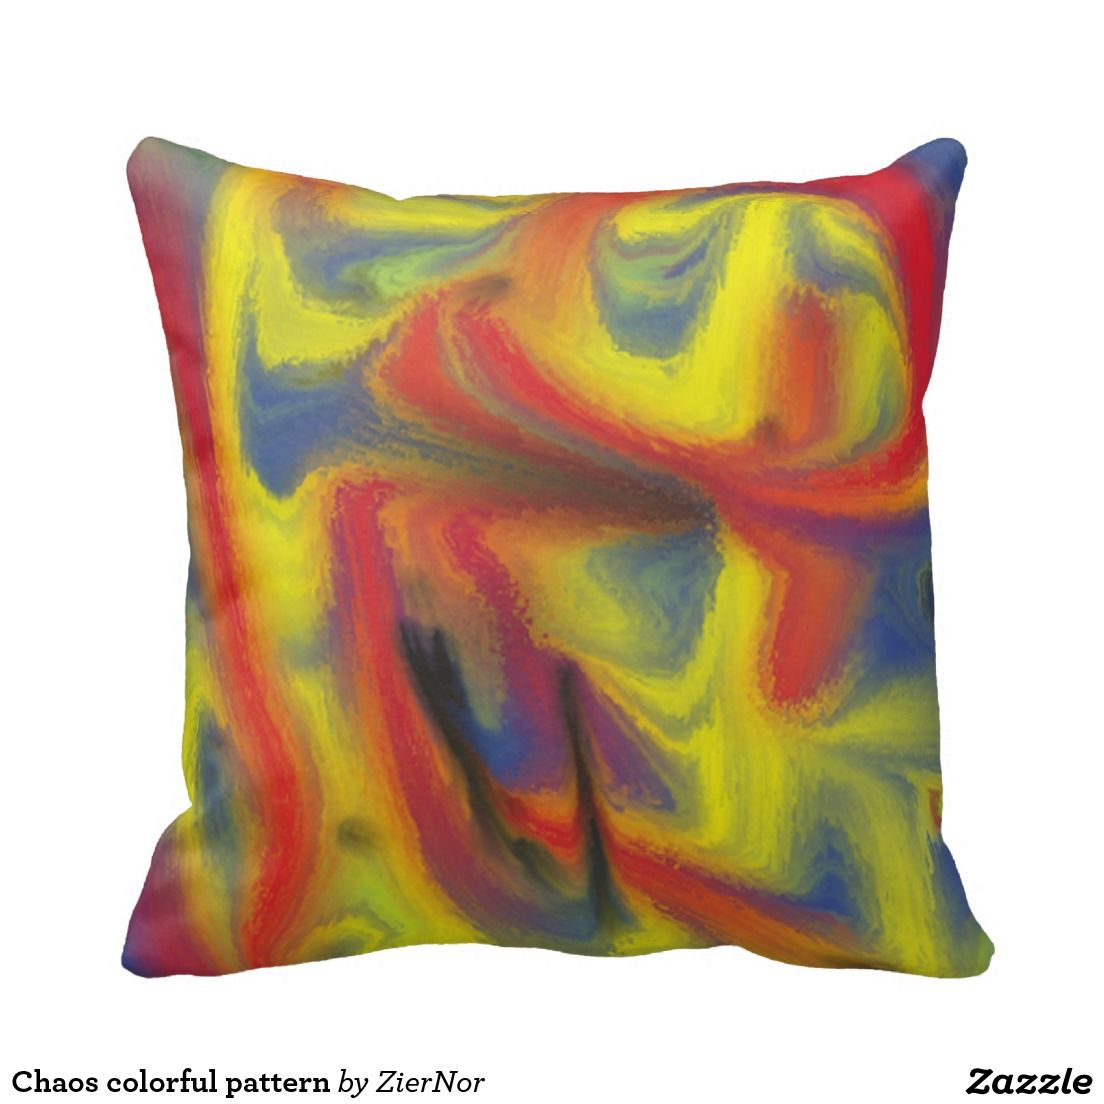 Chaos colorful pattern throw pillow